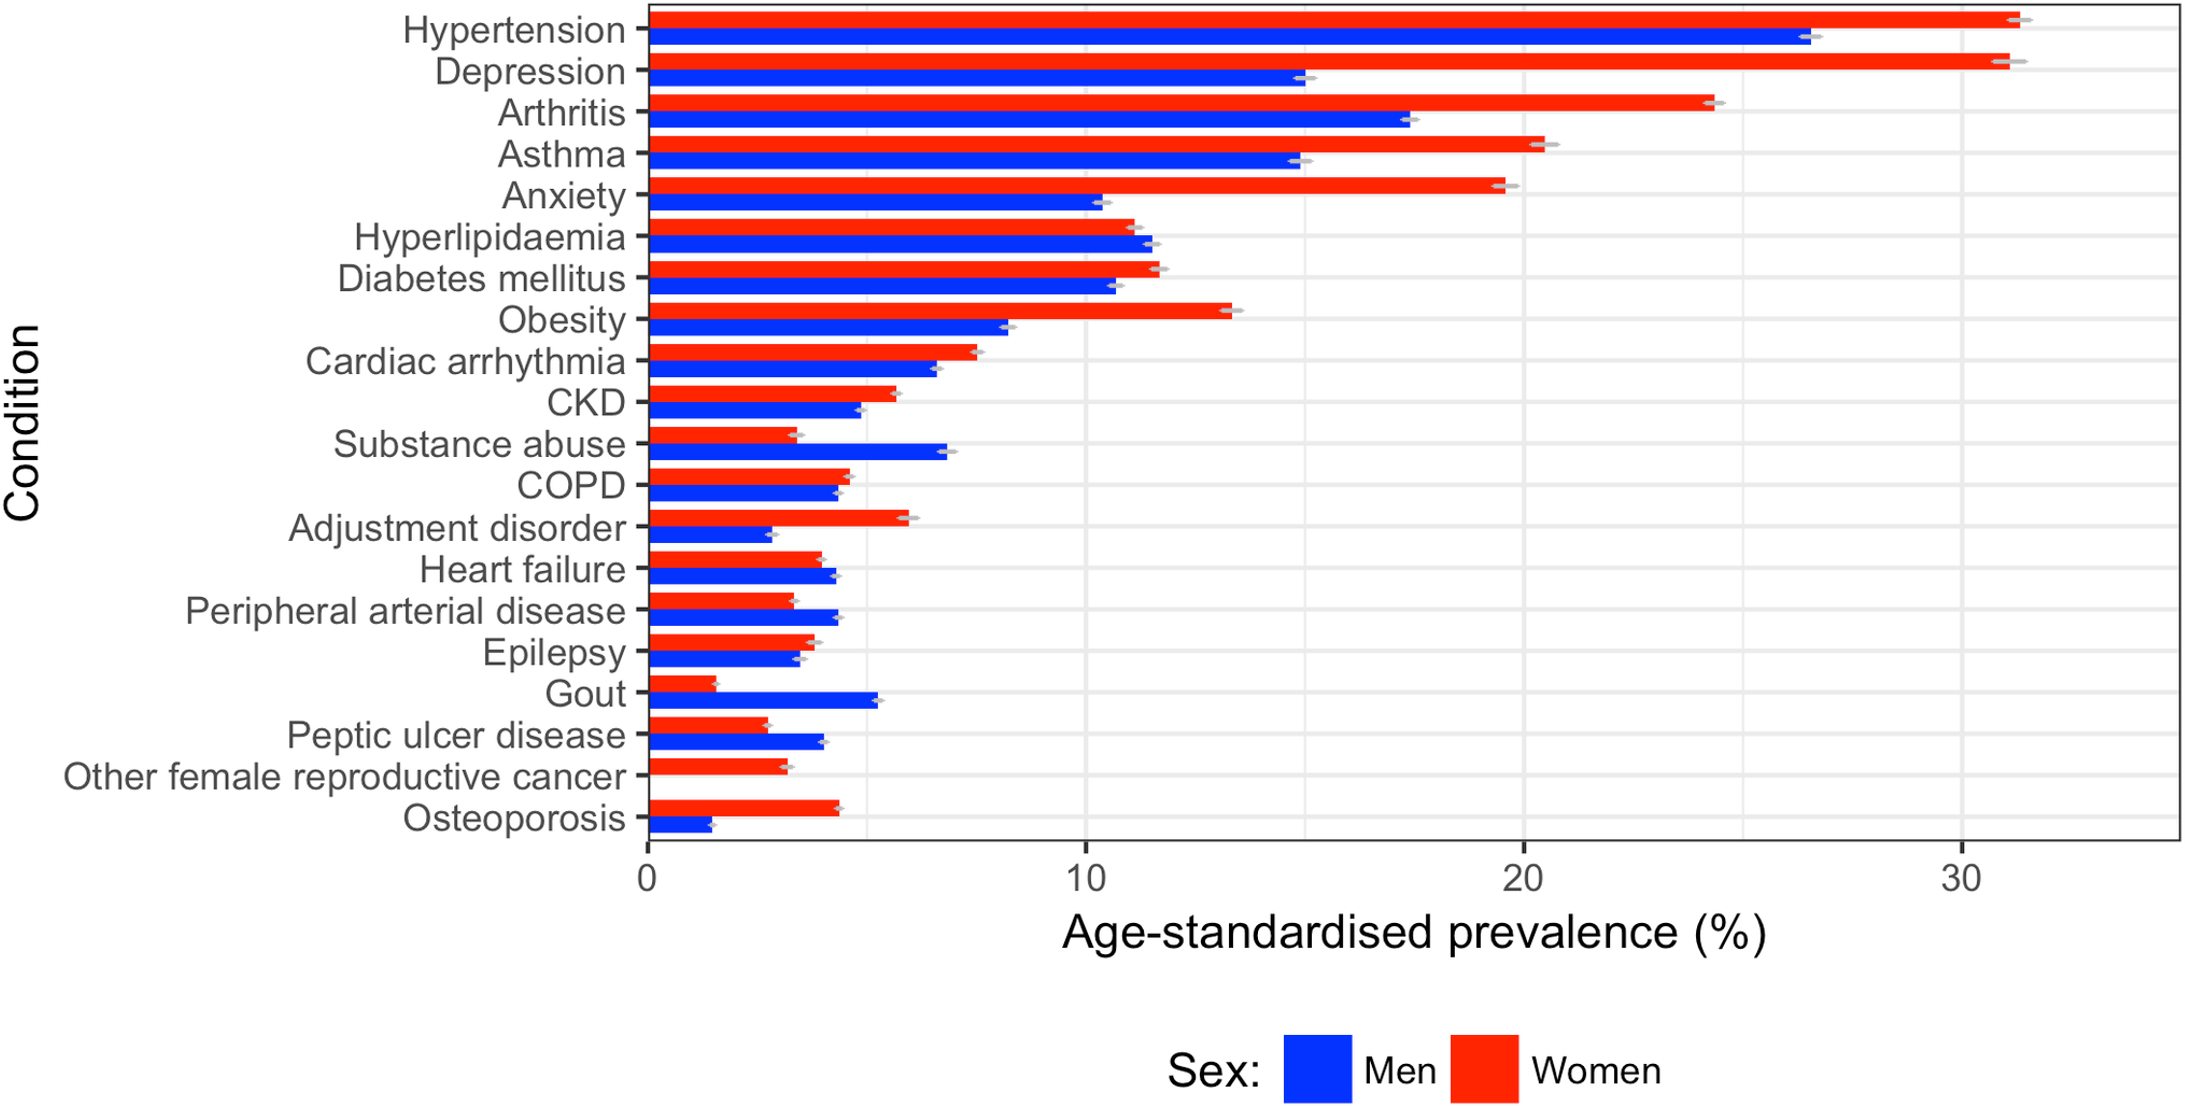 Age-standardised prevalence of comorbidities in women and men.